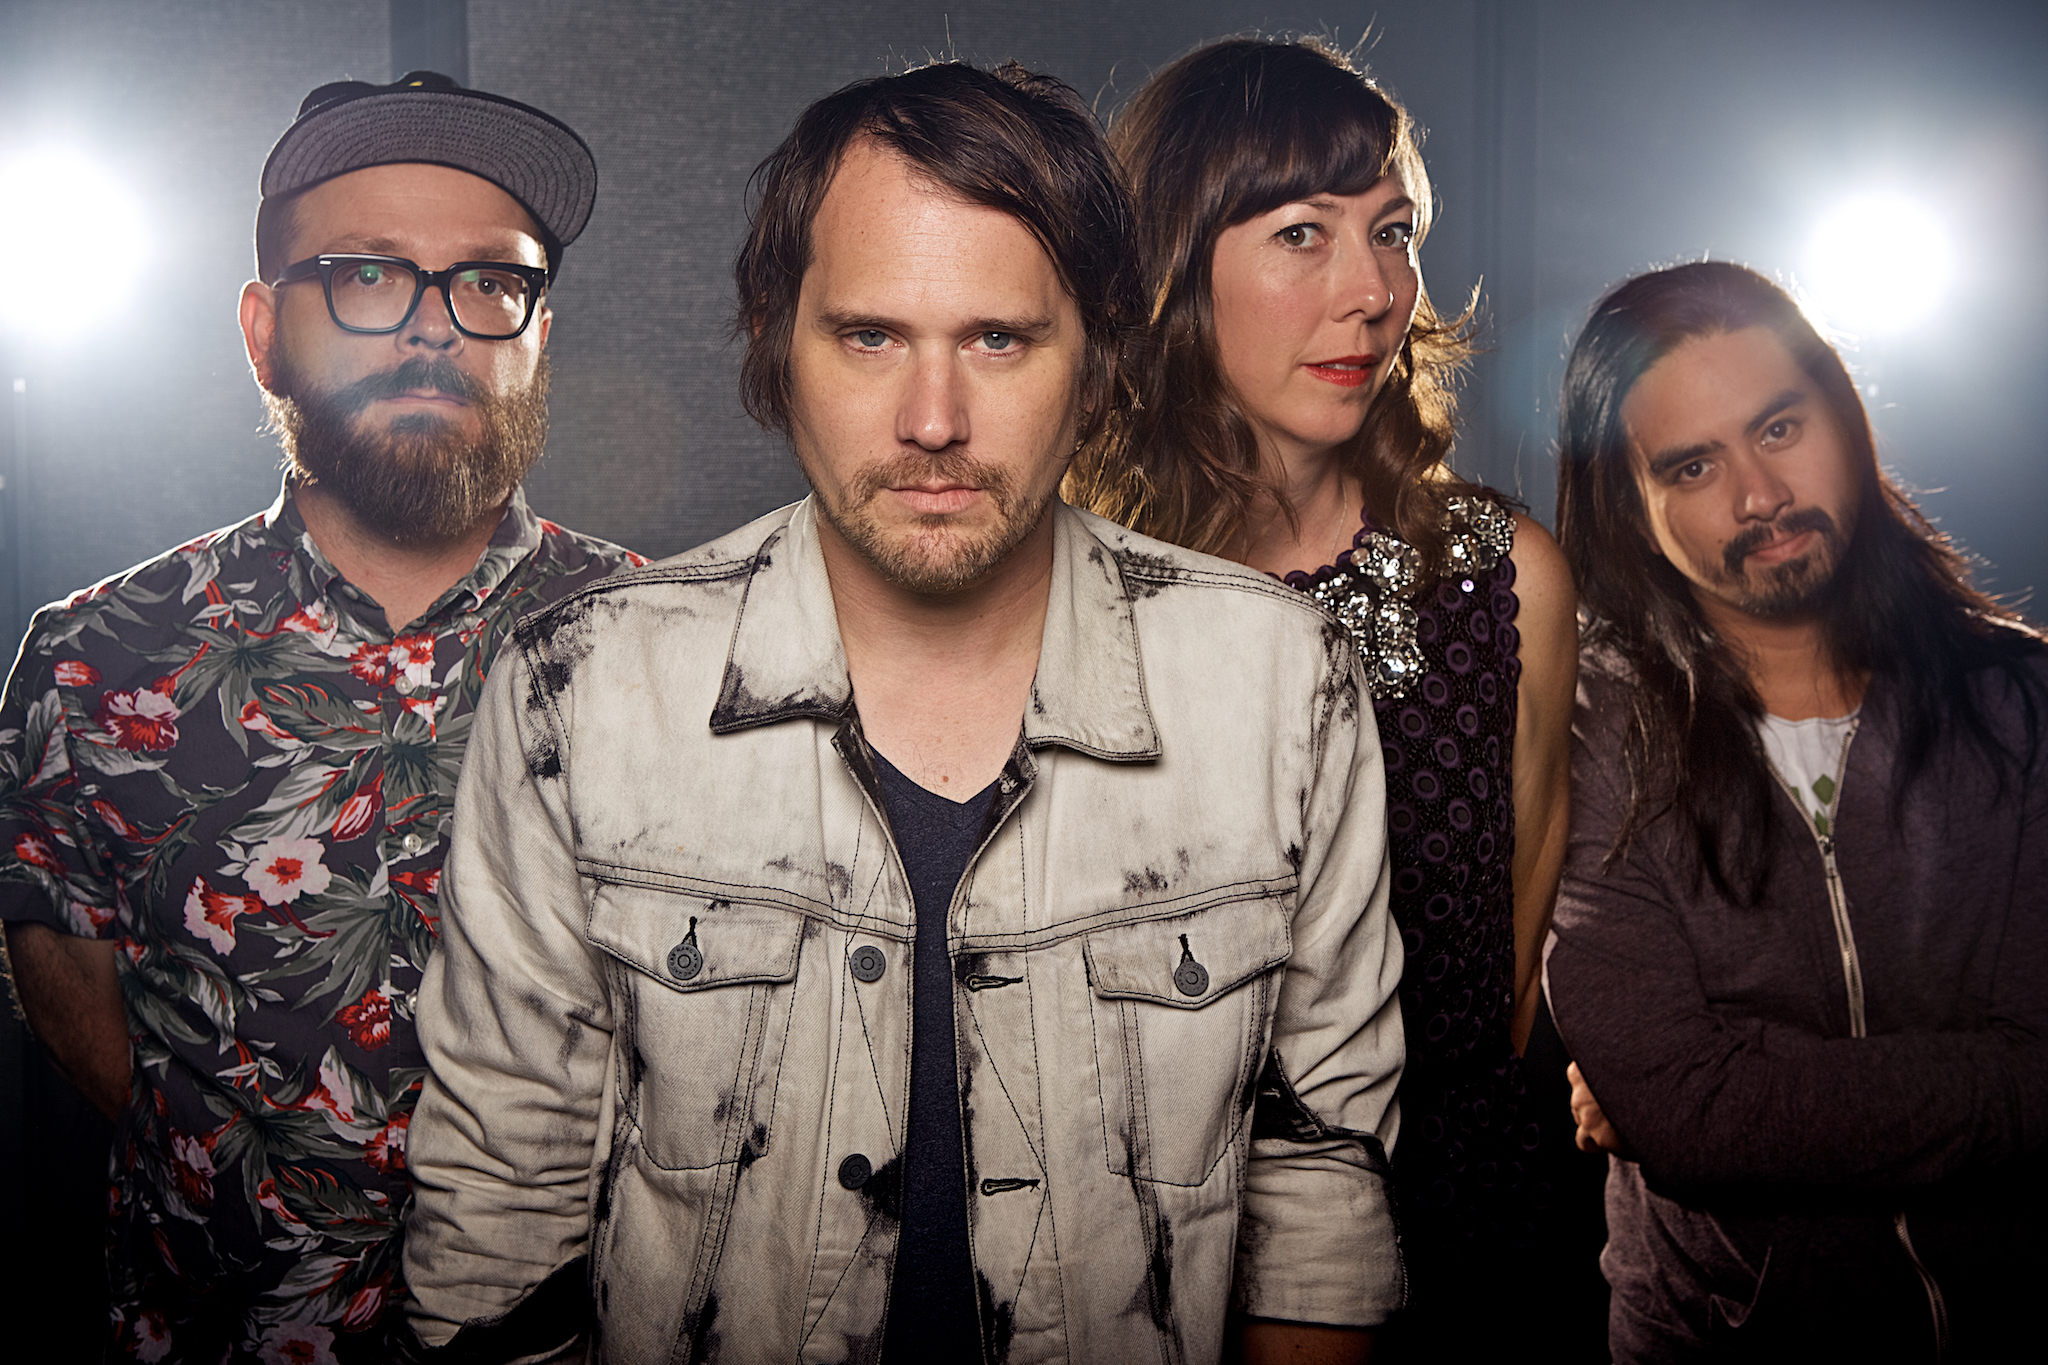 Silversun Pickups Portrait for iHeartRadio   - Shooting SSPU was a big one for me. Their show at iHeart was right after their 3 sold out nights at the Masonic Lodge at Hollywood Forever, so the guys were a bit tired but still in great spirits. For their portraits, I had a couple loose ideas of what I wanted to do. After working a couple iHeart gigs, I learned pretty quickly, that you can't be too terribly prepared and you need to be super flexible for those times that the locations and times change multiple times throughout the day.  Knowing that I need to try and get at least 2 different distinct looks, I always try to have AT LEAST 3 or 4 ideas AND alternate locations in mind. For this shoot, it was pretty simple. I had worked out a couple different lighting scenarios that could be changed quickly, so it was just moving a couple light stands, changing a lens, and it had a totally different feel.